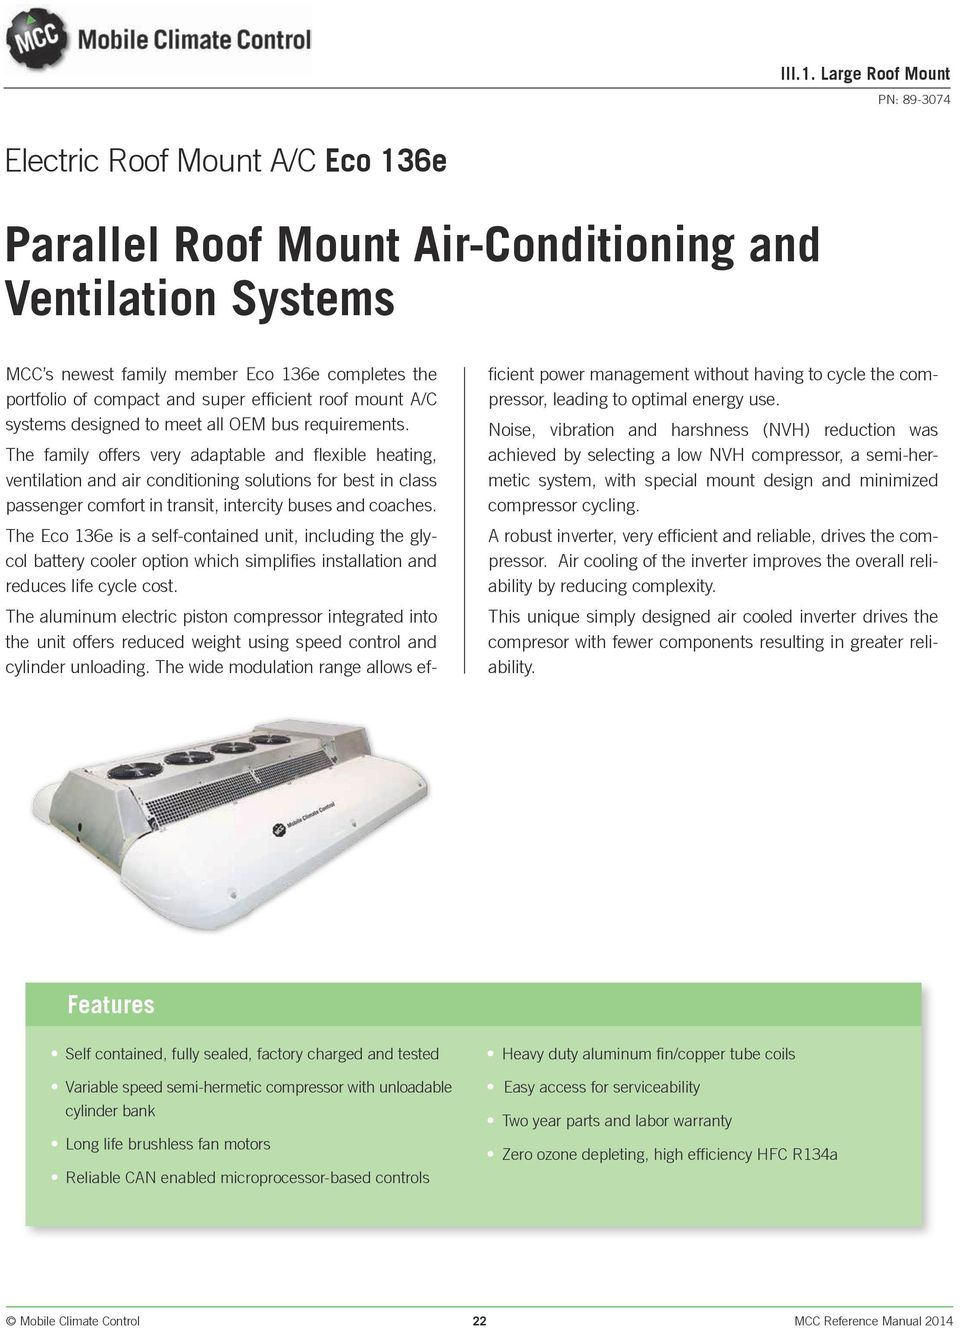 super efficient roof mount A/C systems designed to meet all OEM bus requirements.